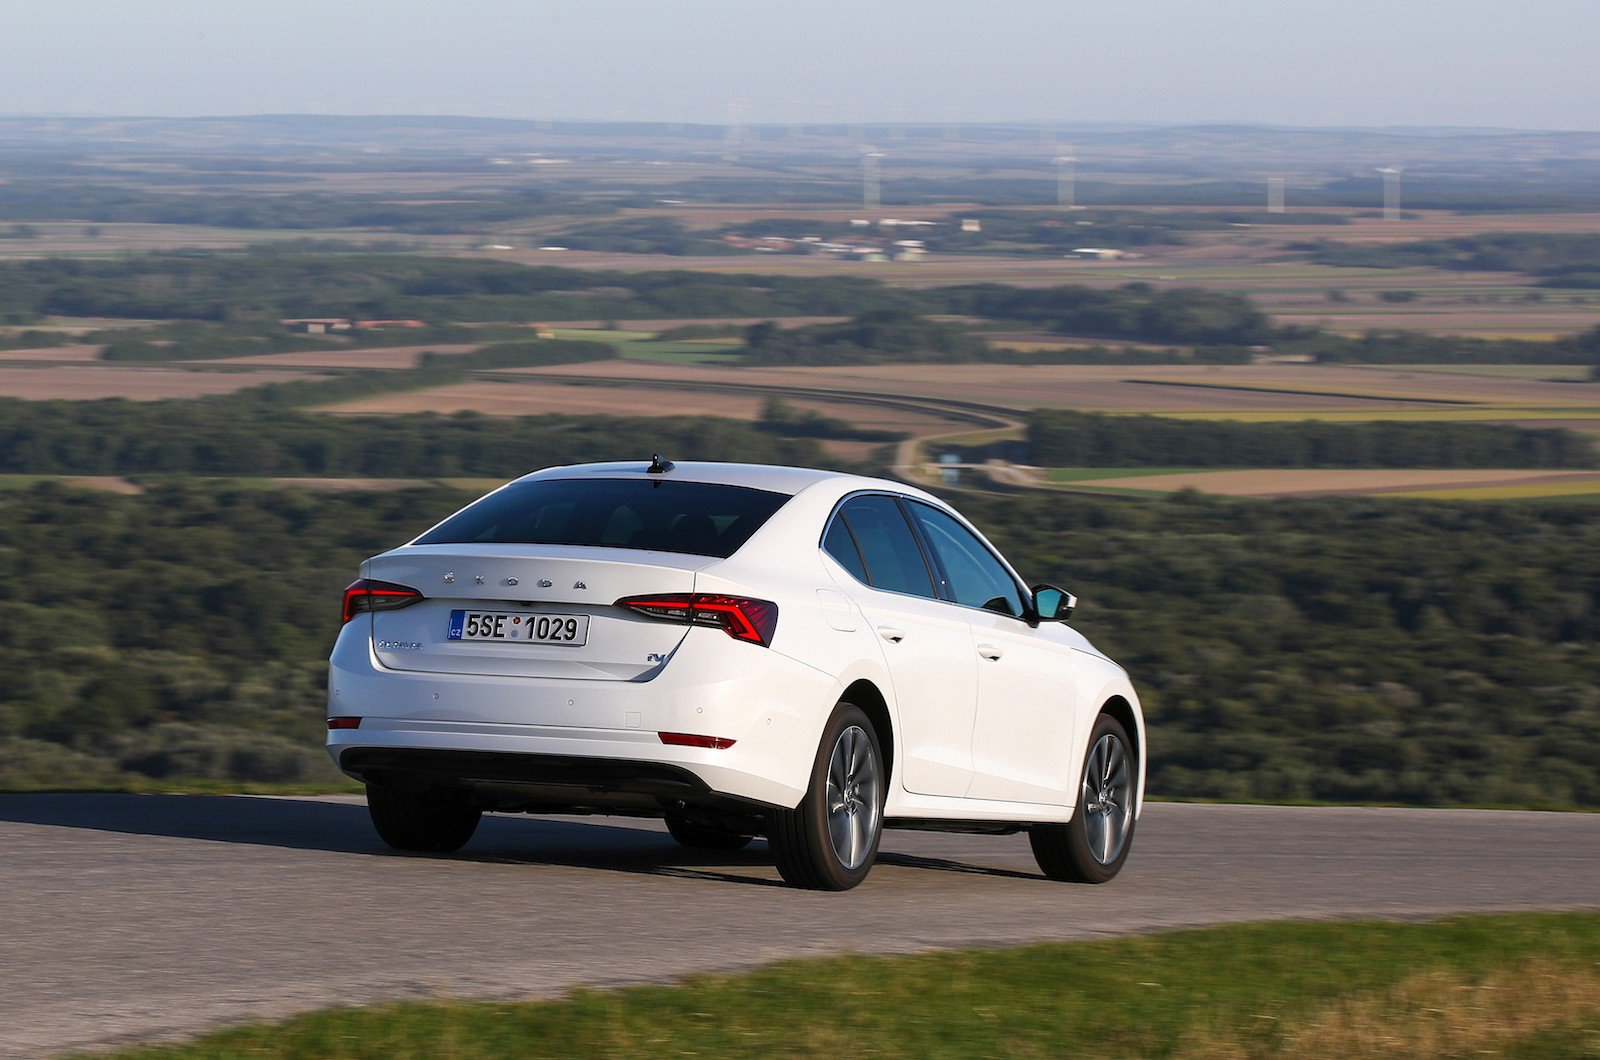 If you're heading further afield, a plug-in hybrid such as the SKODA Superb iV delivers real flexibility